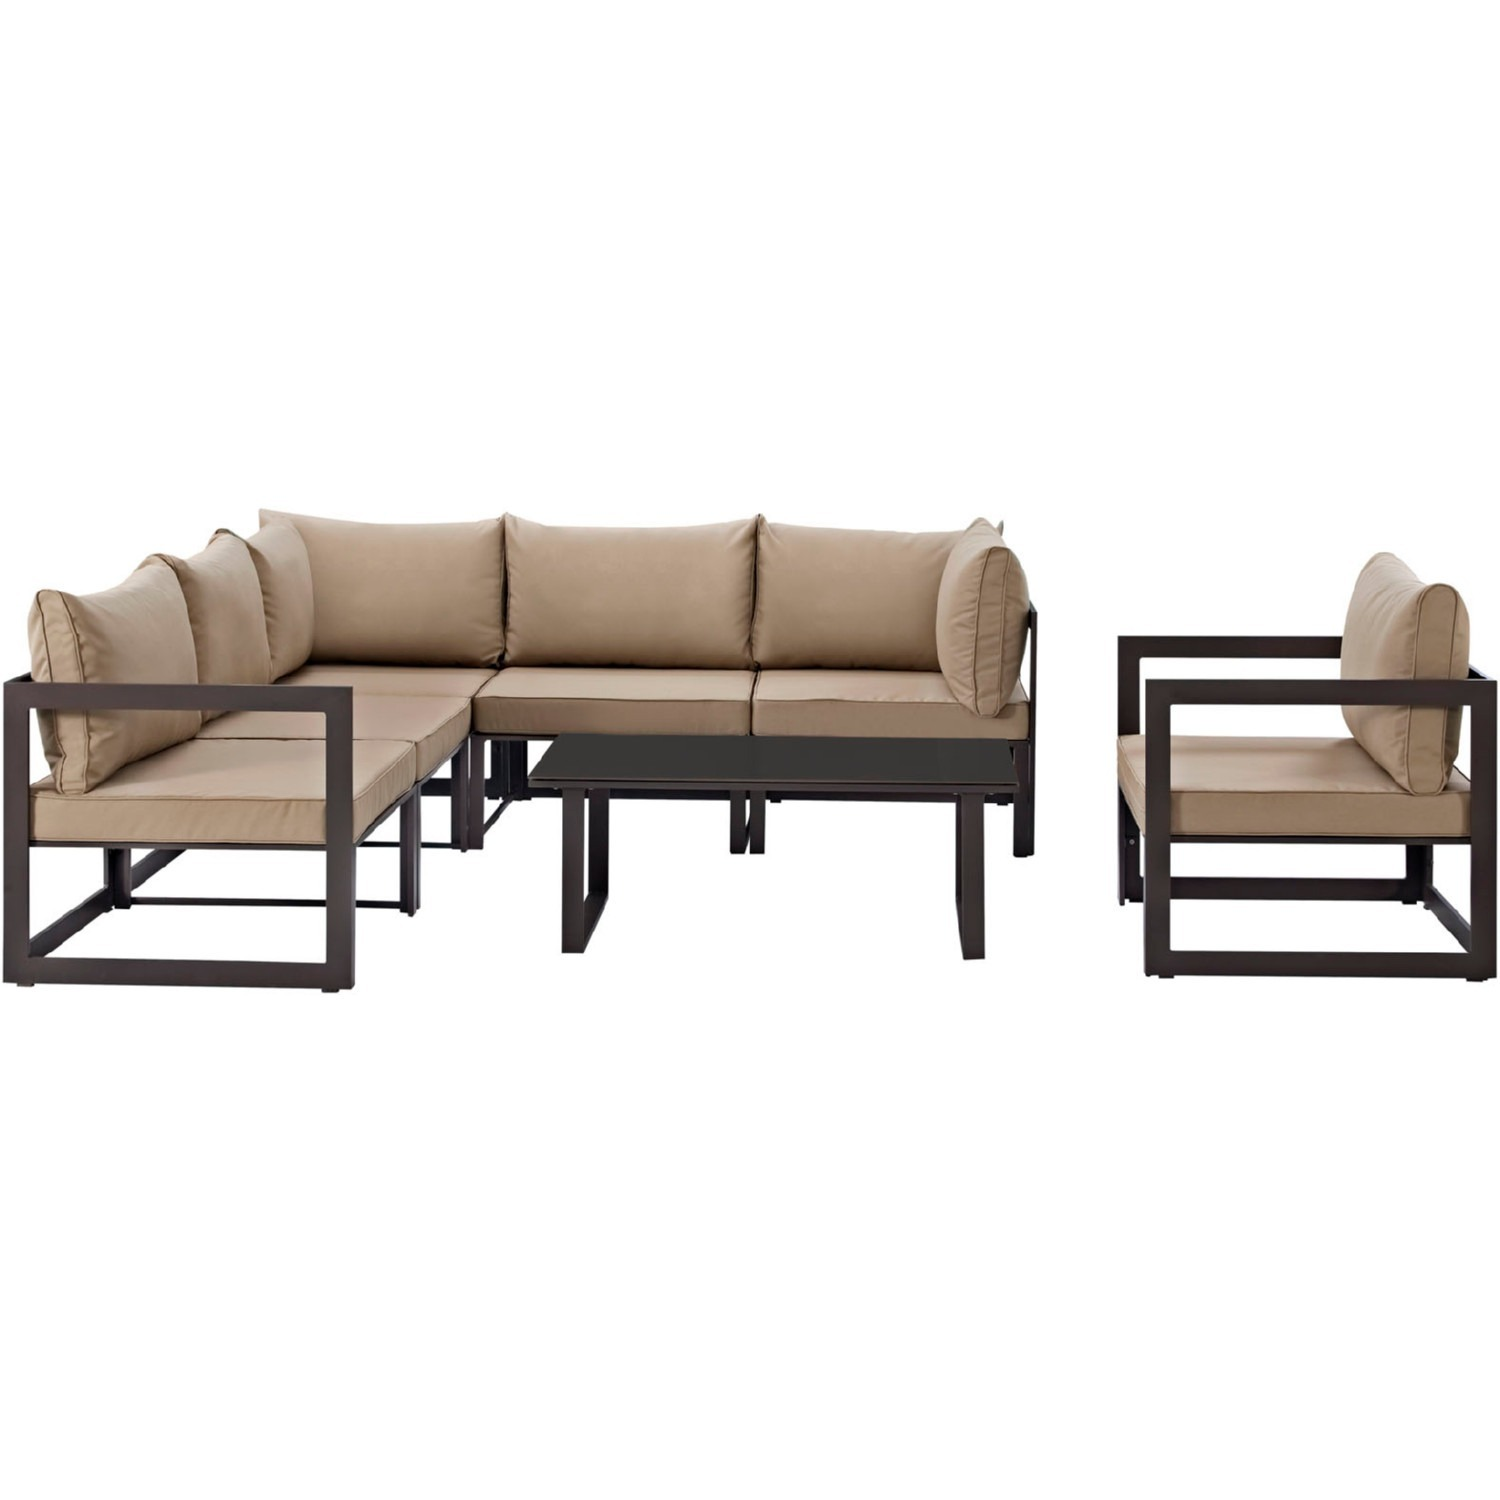 7-Piece Outdoor Sectional In Mocha & Brown Finish - image-1